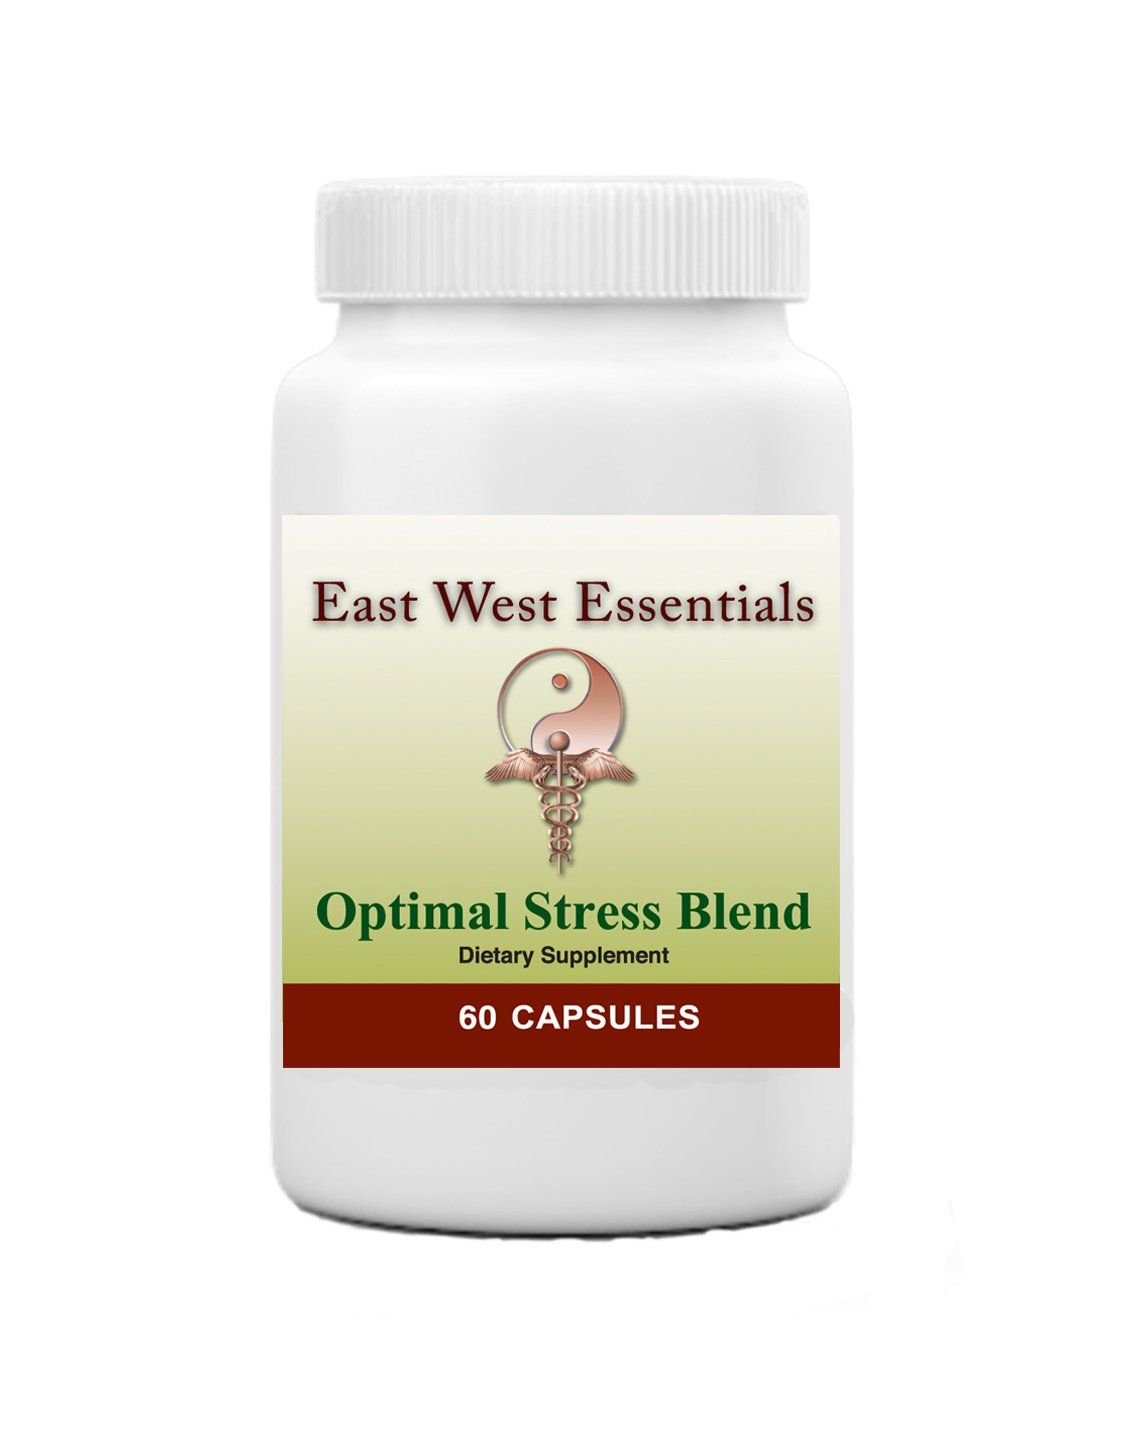 Optimal Stress Blend - Dietary Supplement by East West Essentials - Vitamin B Complex Blend - Offers Nutritional Support for Anxiety and Depression